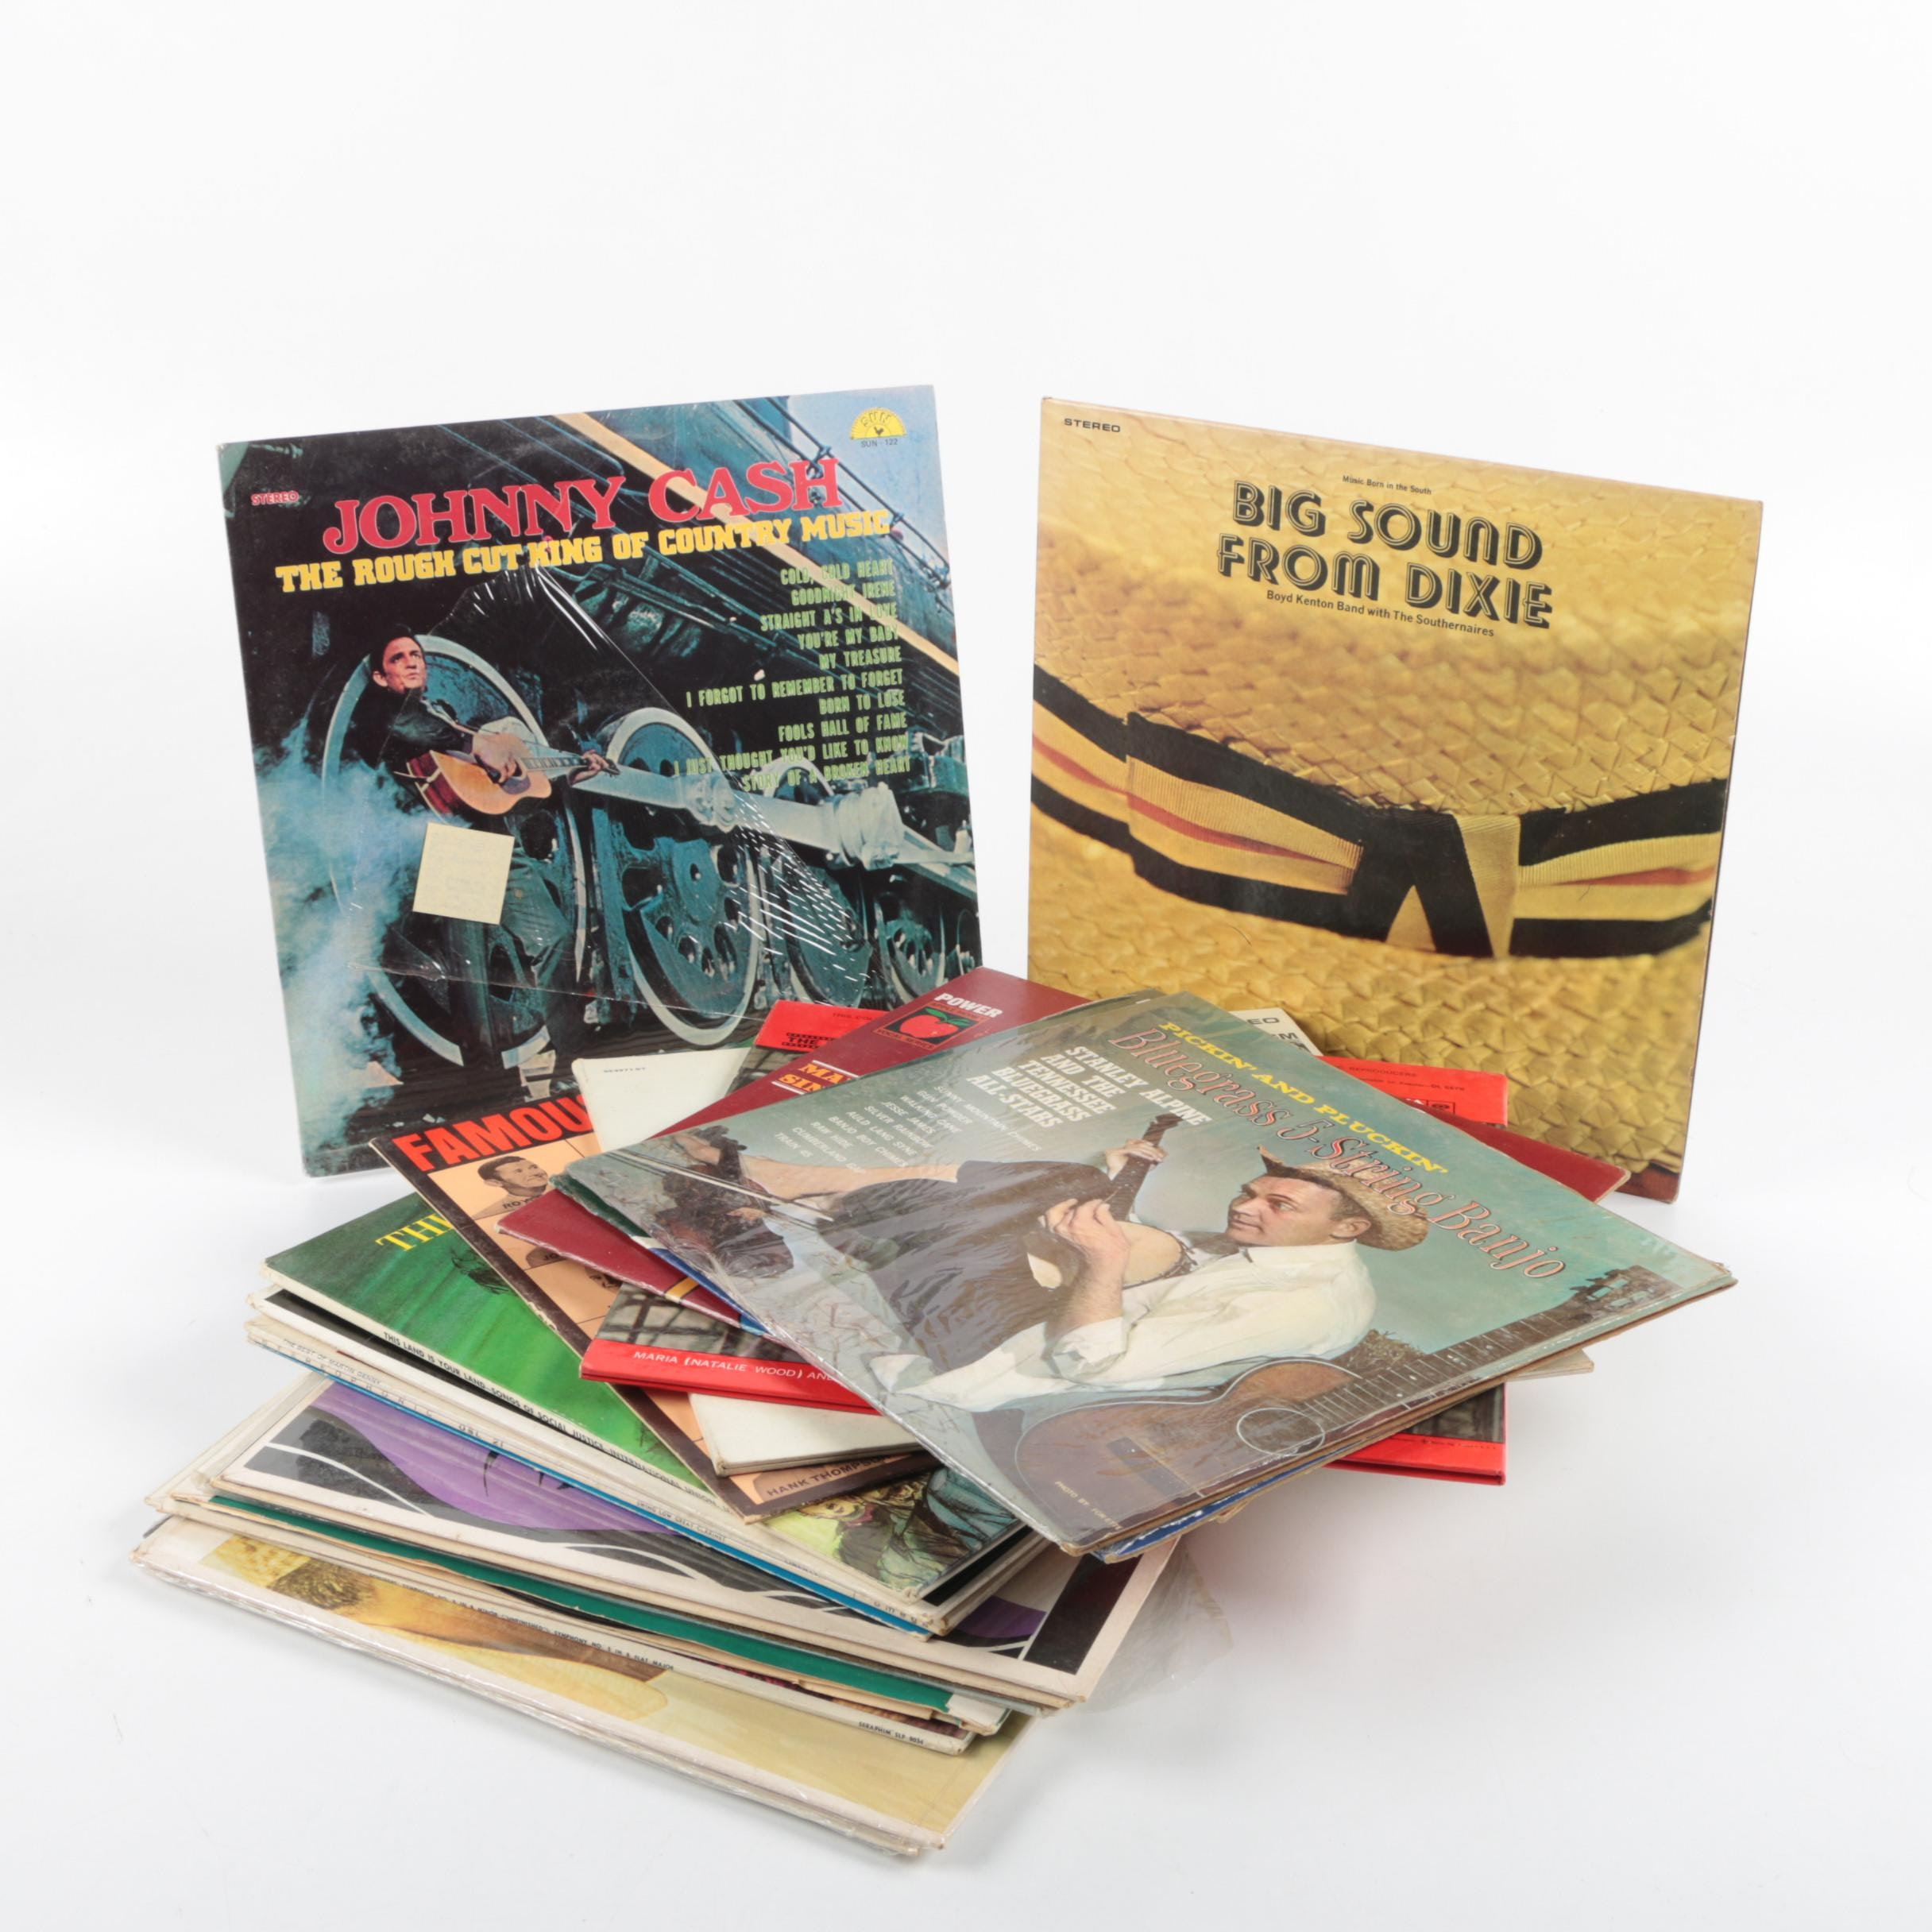 Assorted Vintage Records